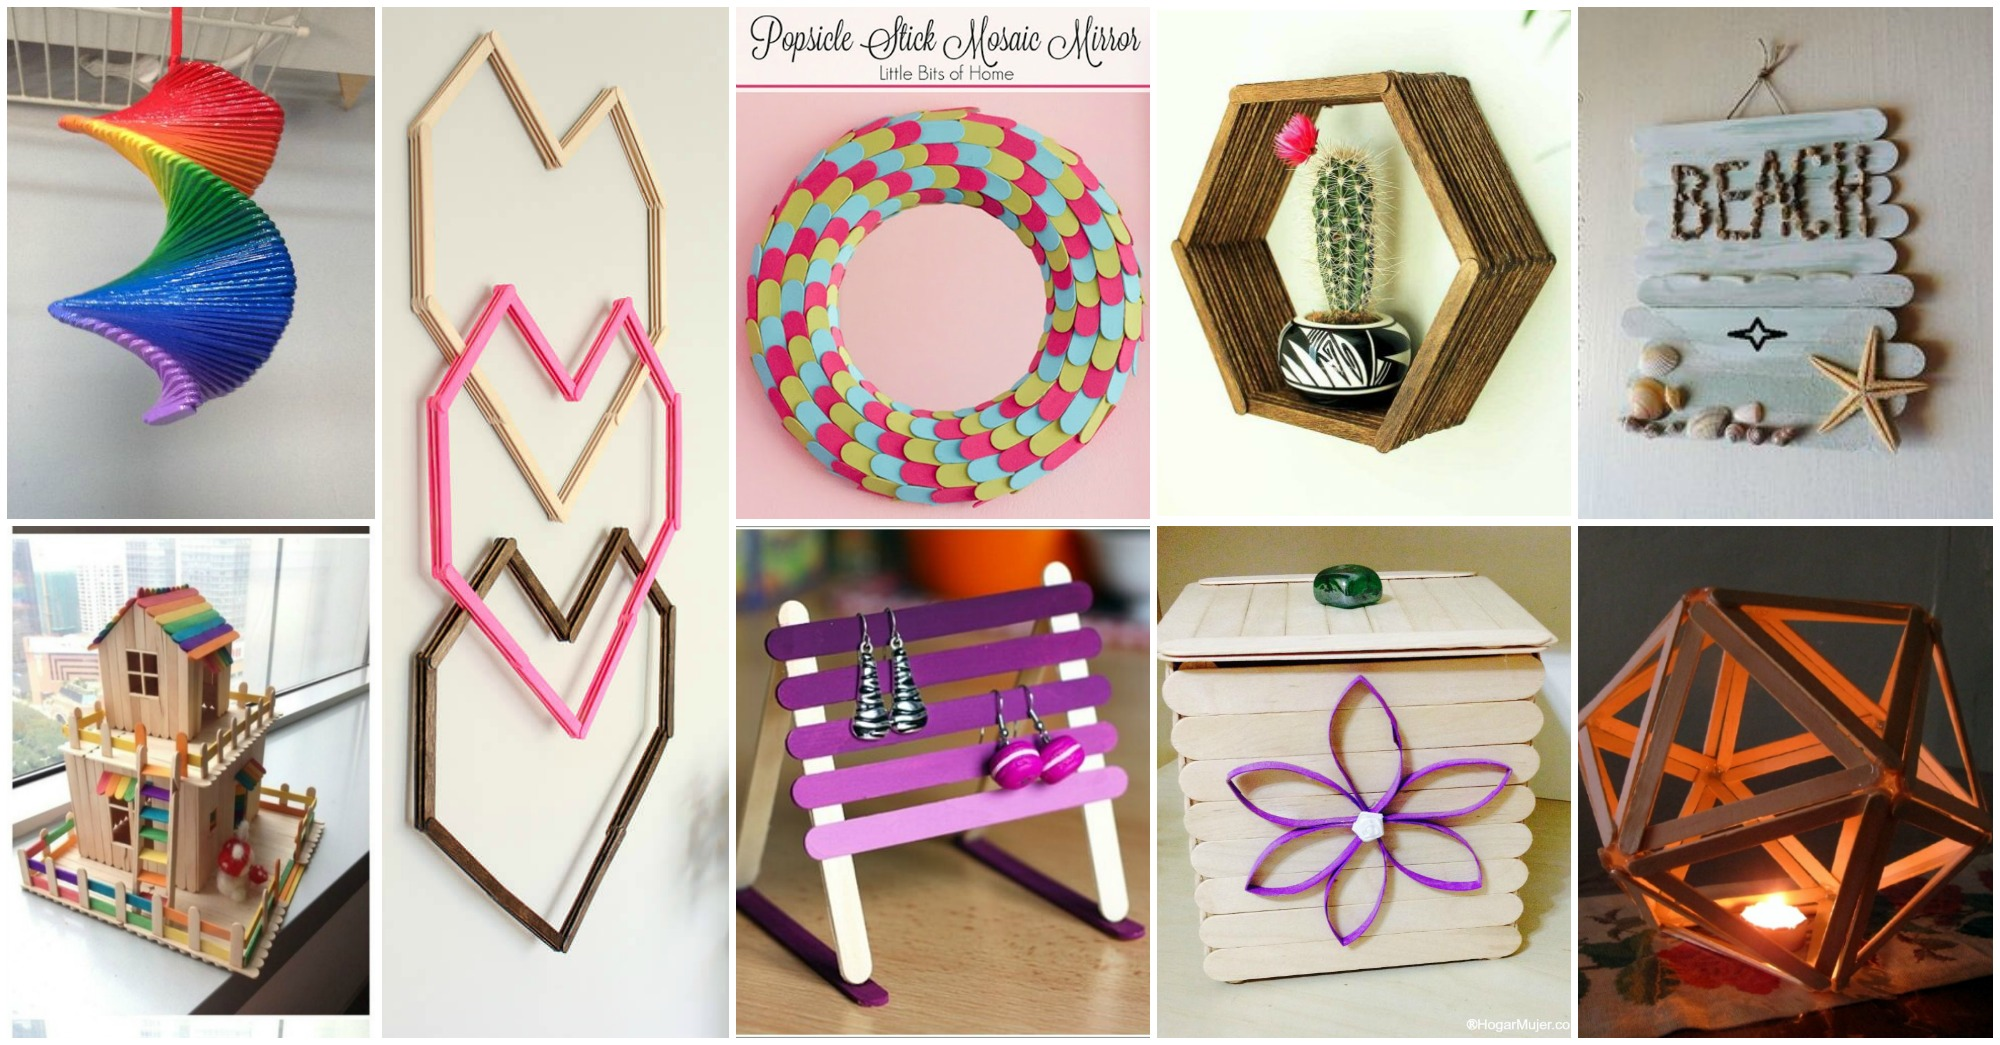 13 diy popsicle sticks home decor ideas for Decorative items for home with waste material